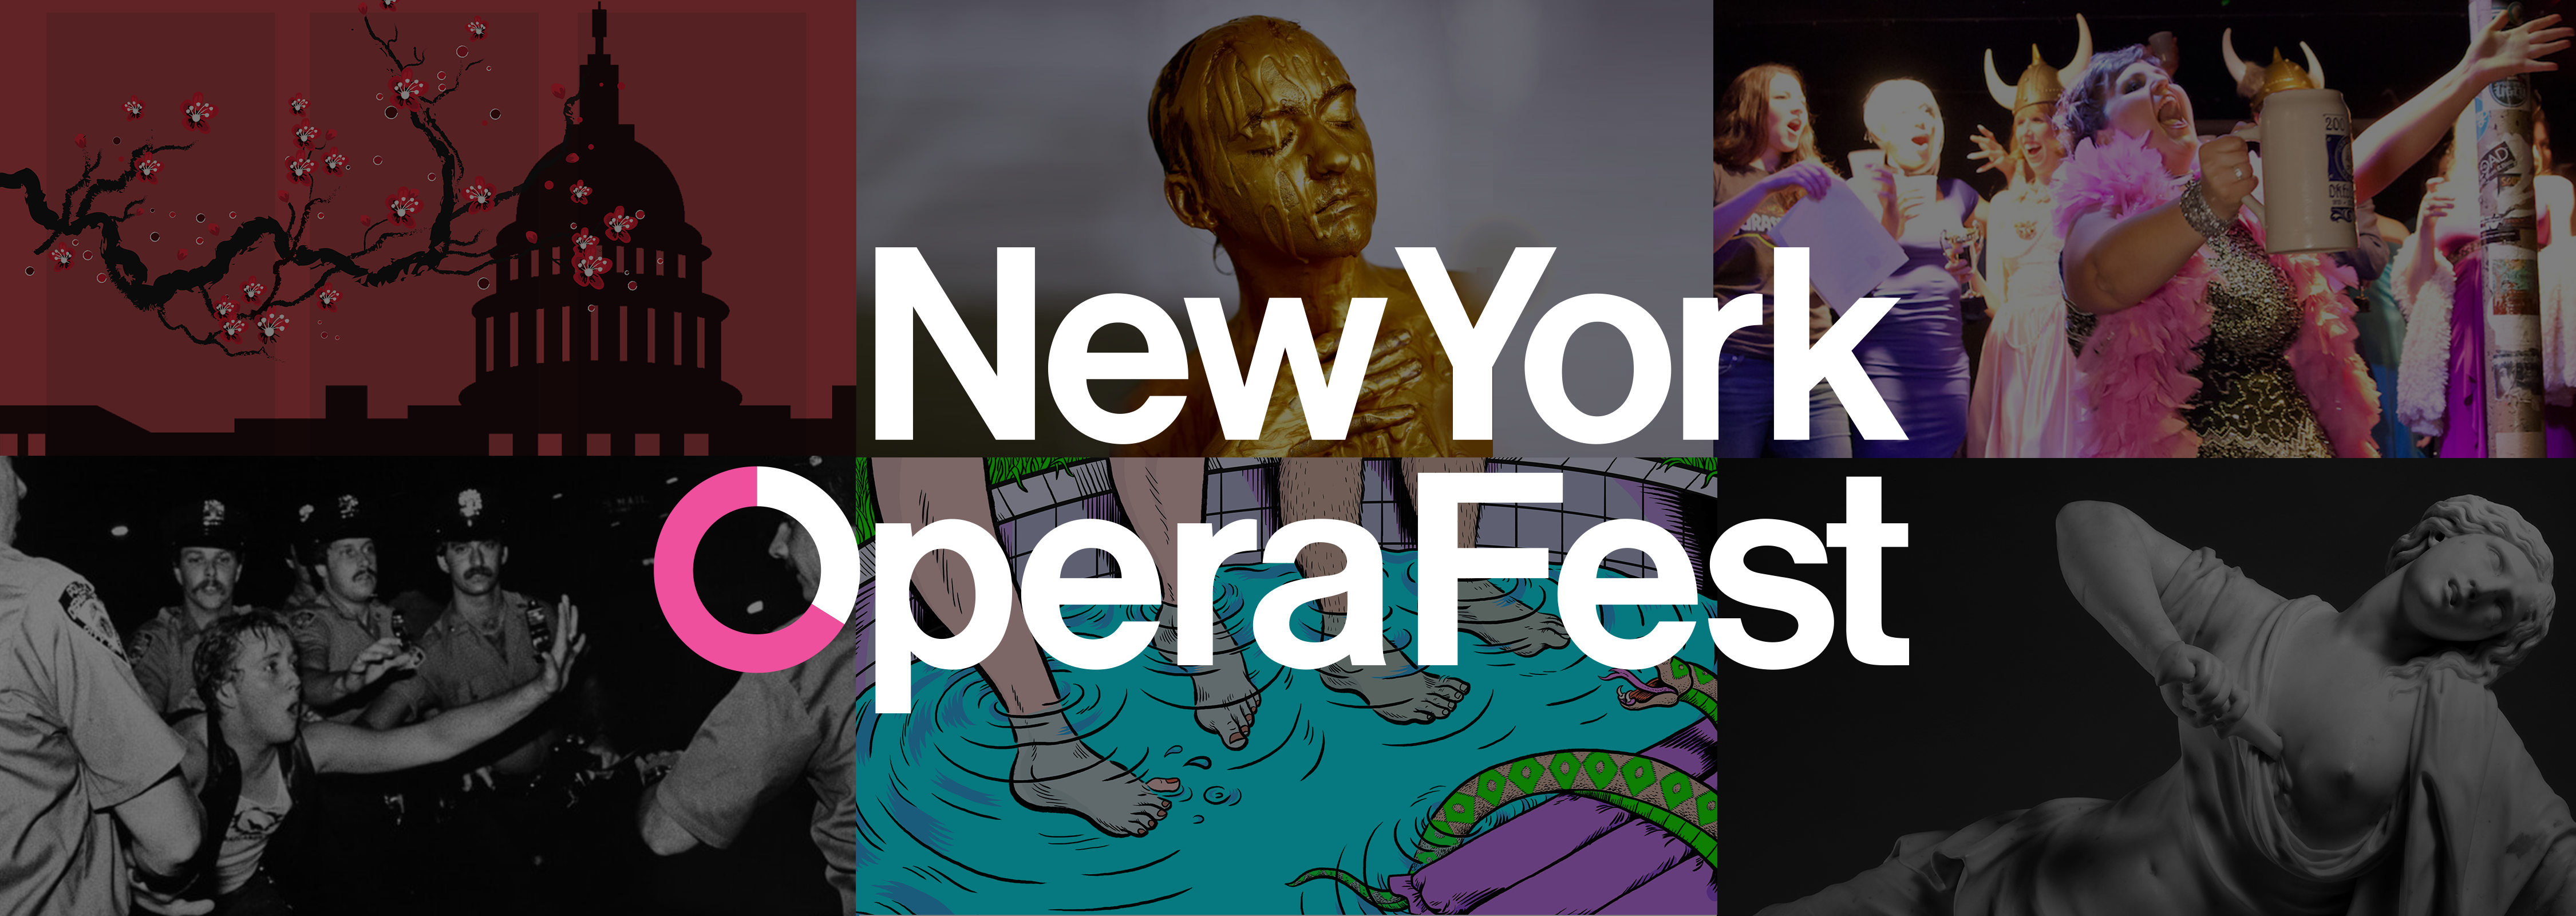 The New York Opera Festival World Premiere